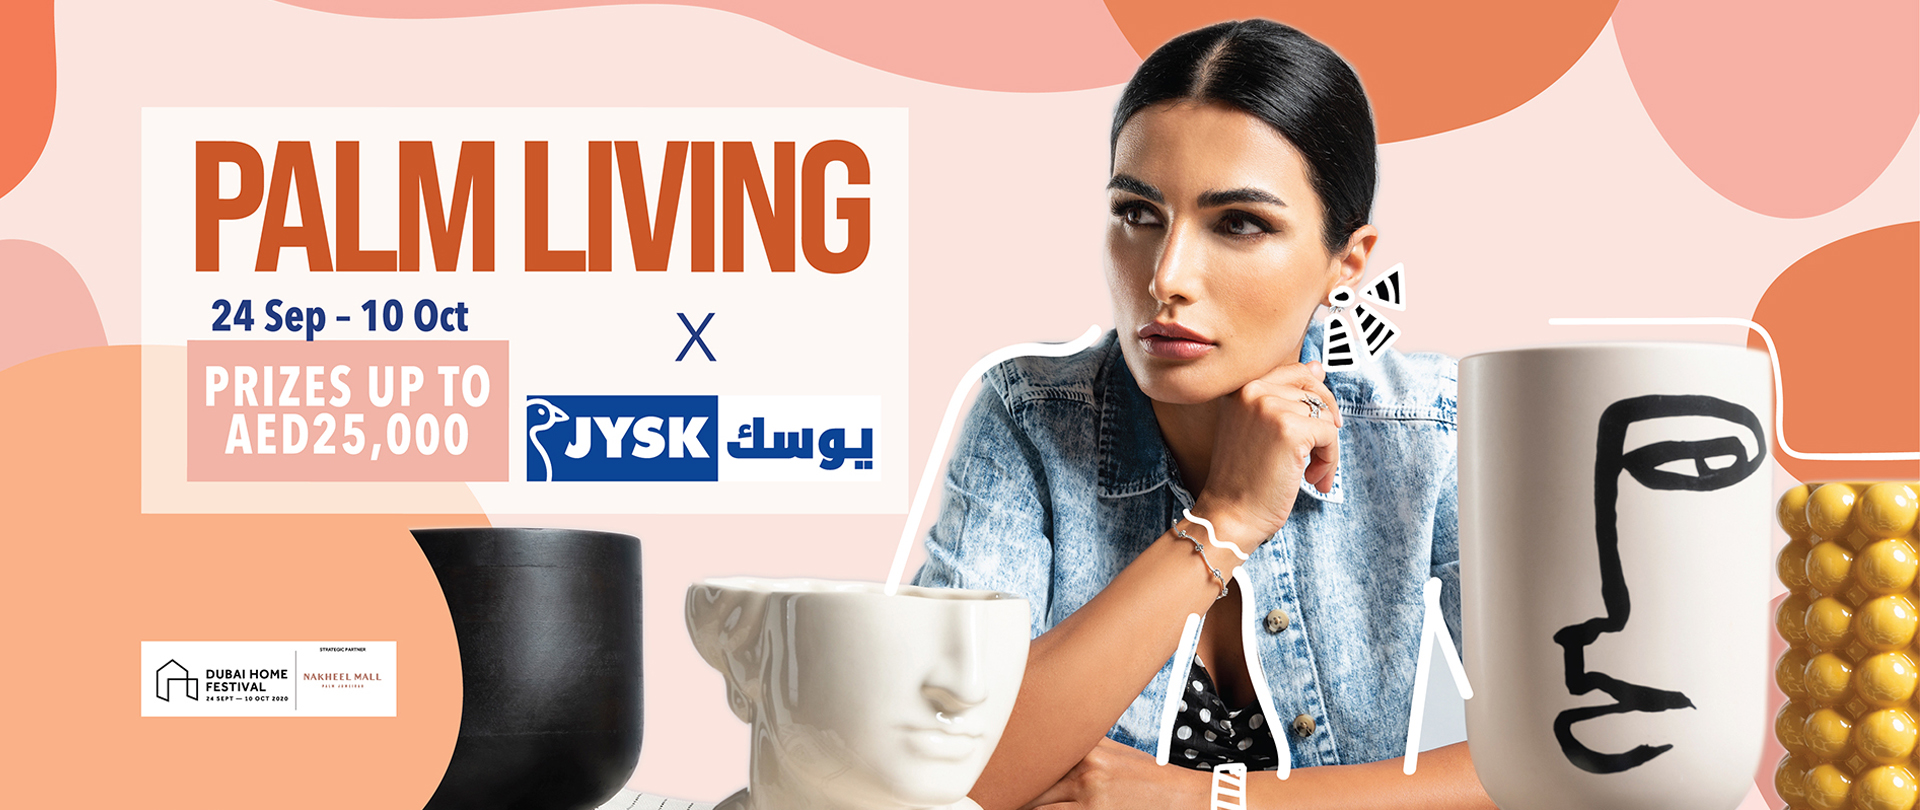 Celebrate Palm Living' at Nakheel Mall and win prizes up to AED 25,000 by JYSK